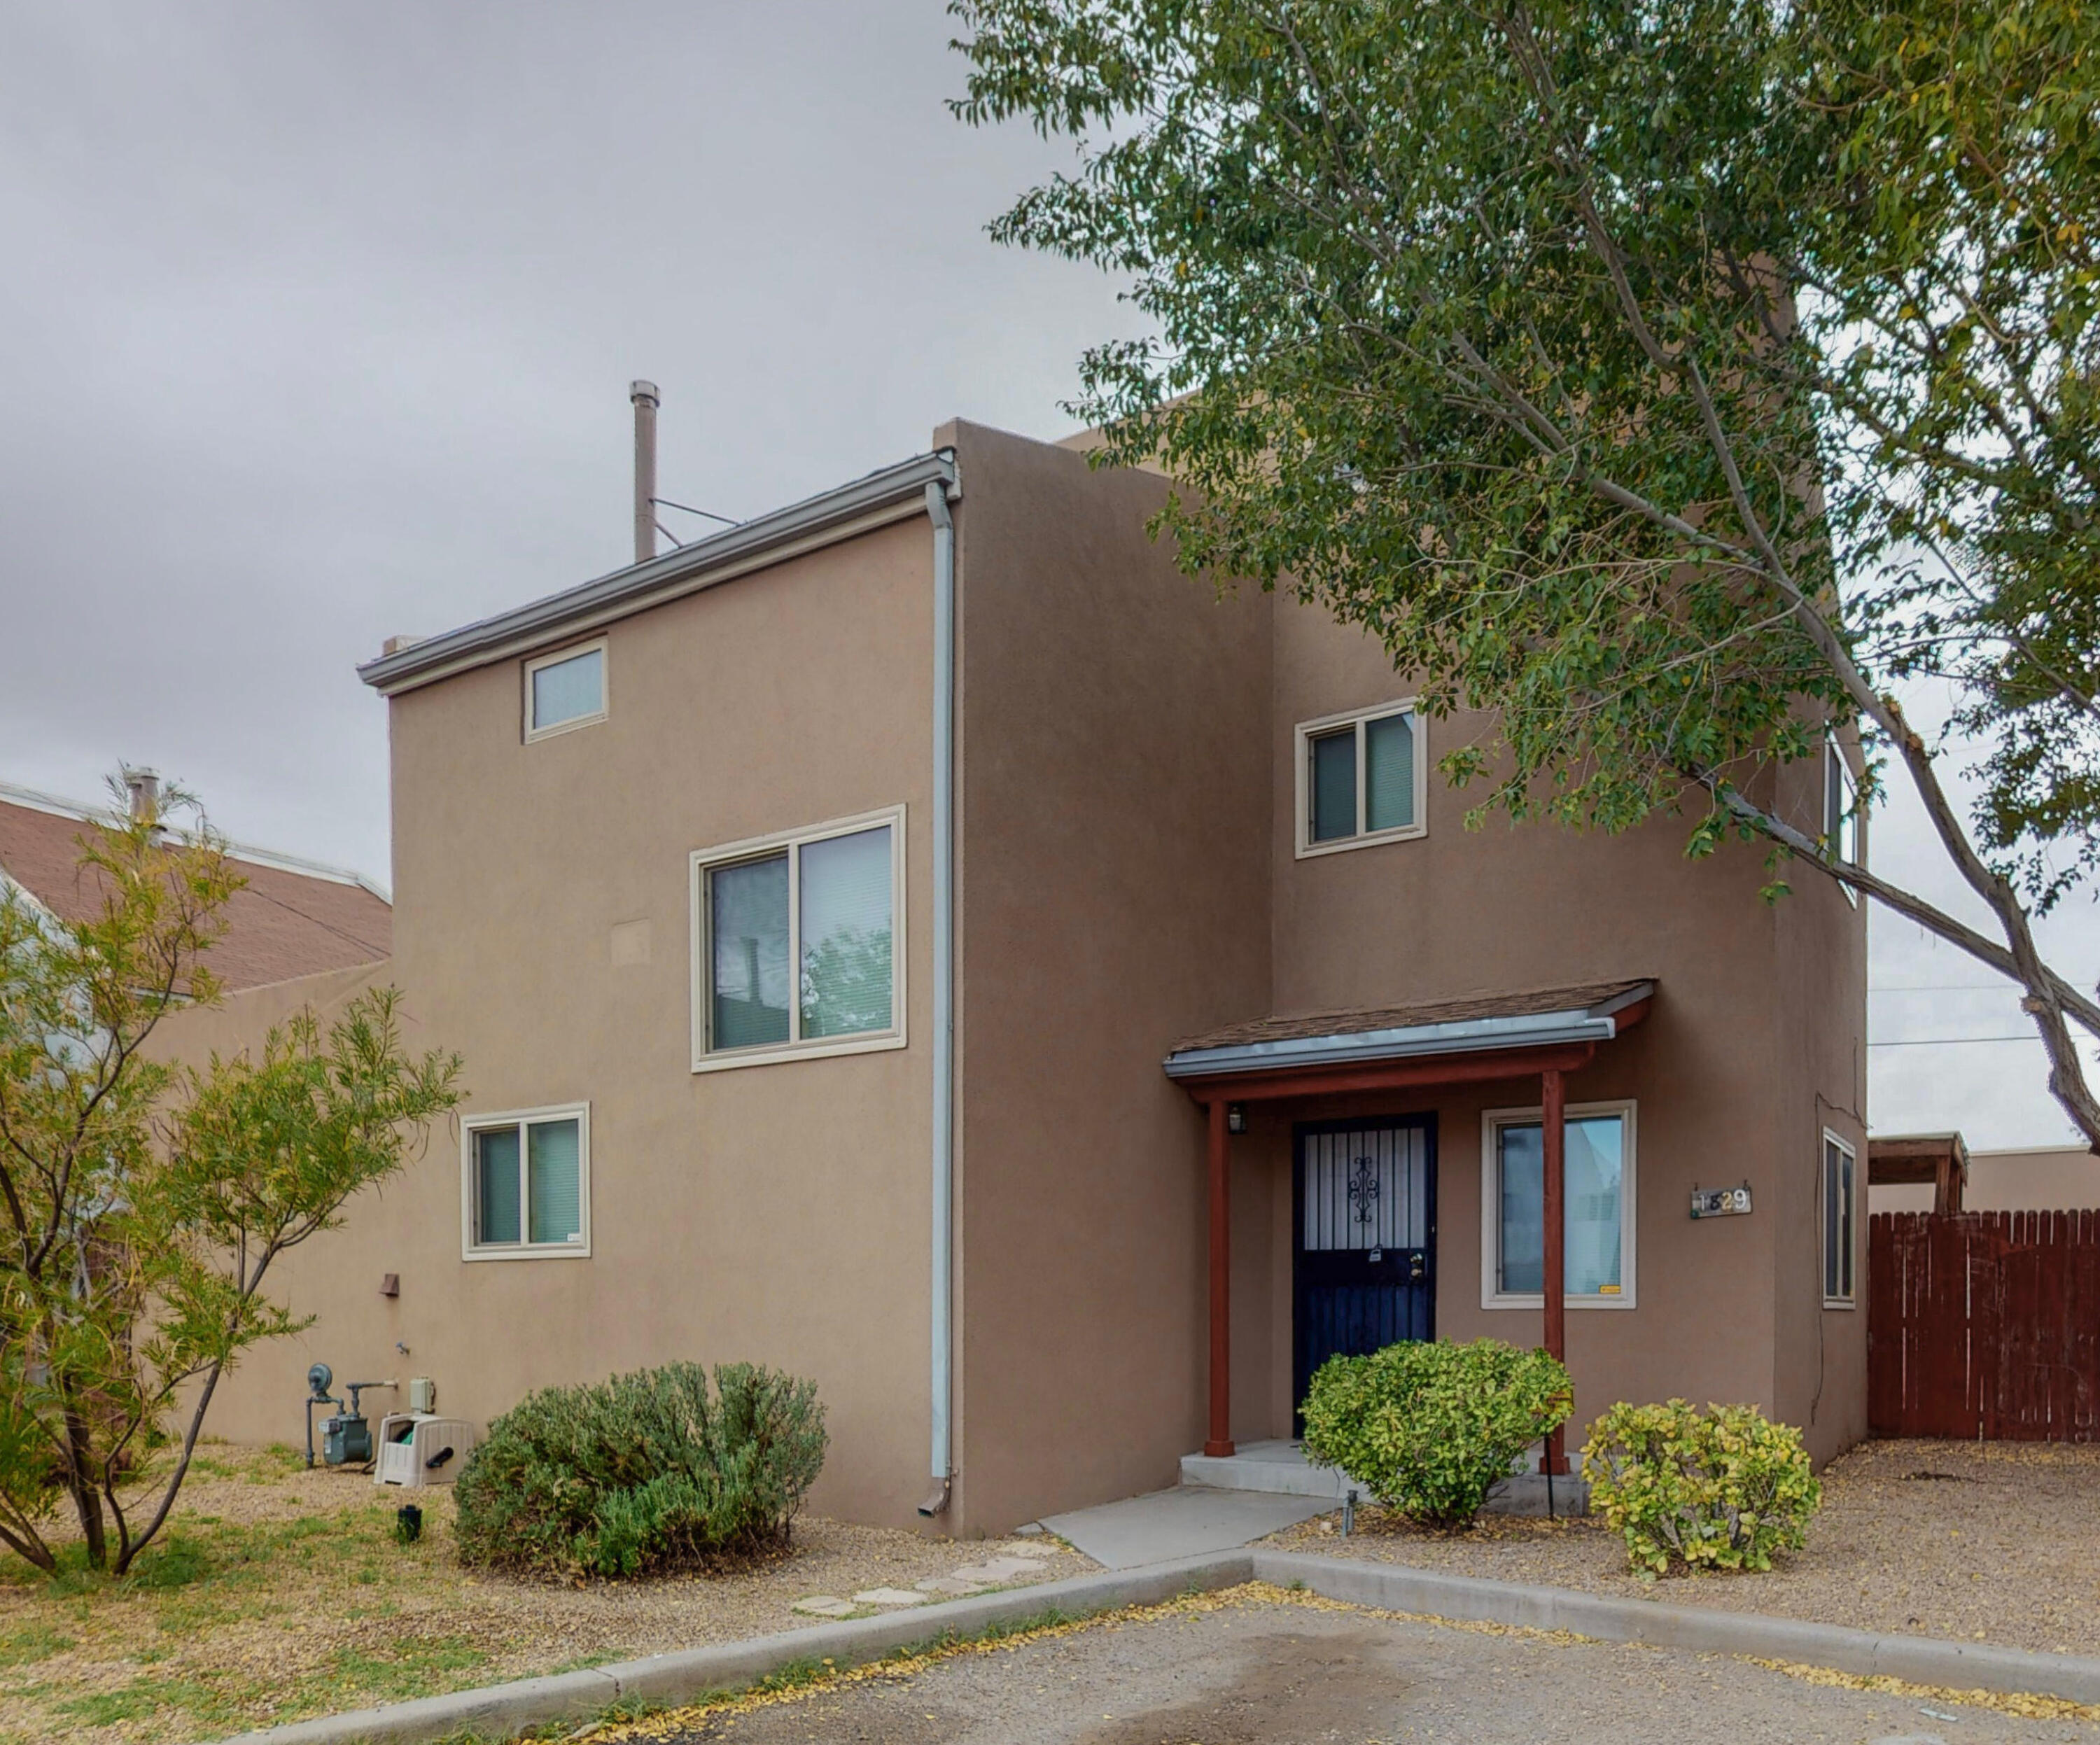 Move in Ready home in a great location. that has easy access to UNM,CNM Kirtland, Sandia Labs, Hospitals and the Freeway. Refrigerated Air on the end of a Cul De Sac.